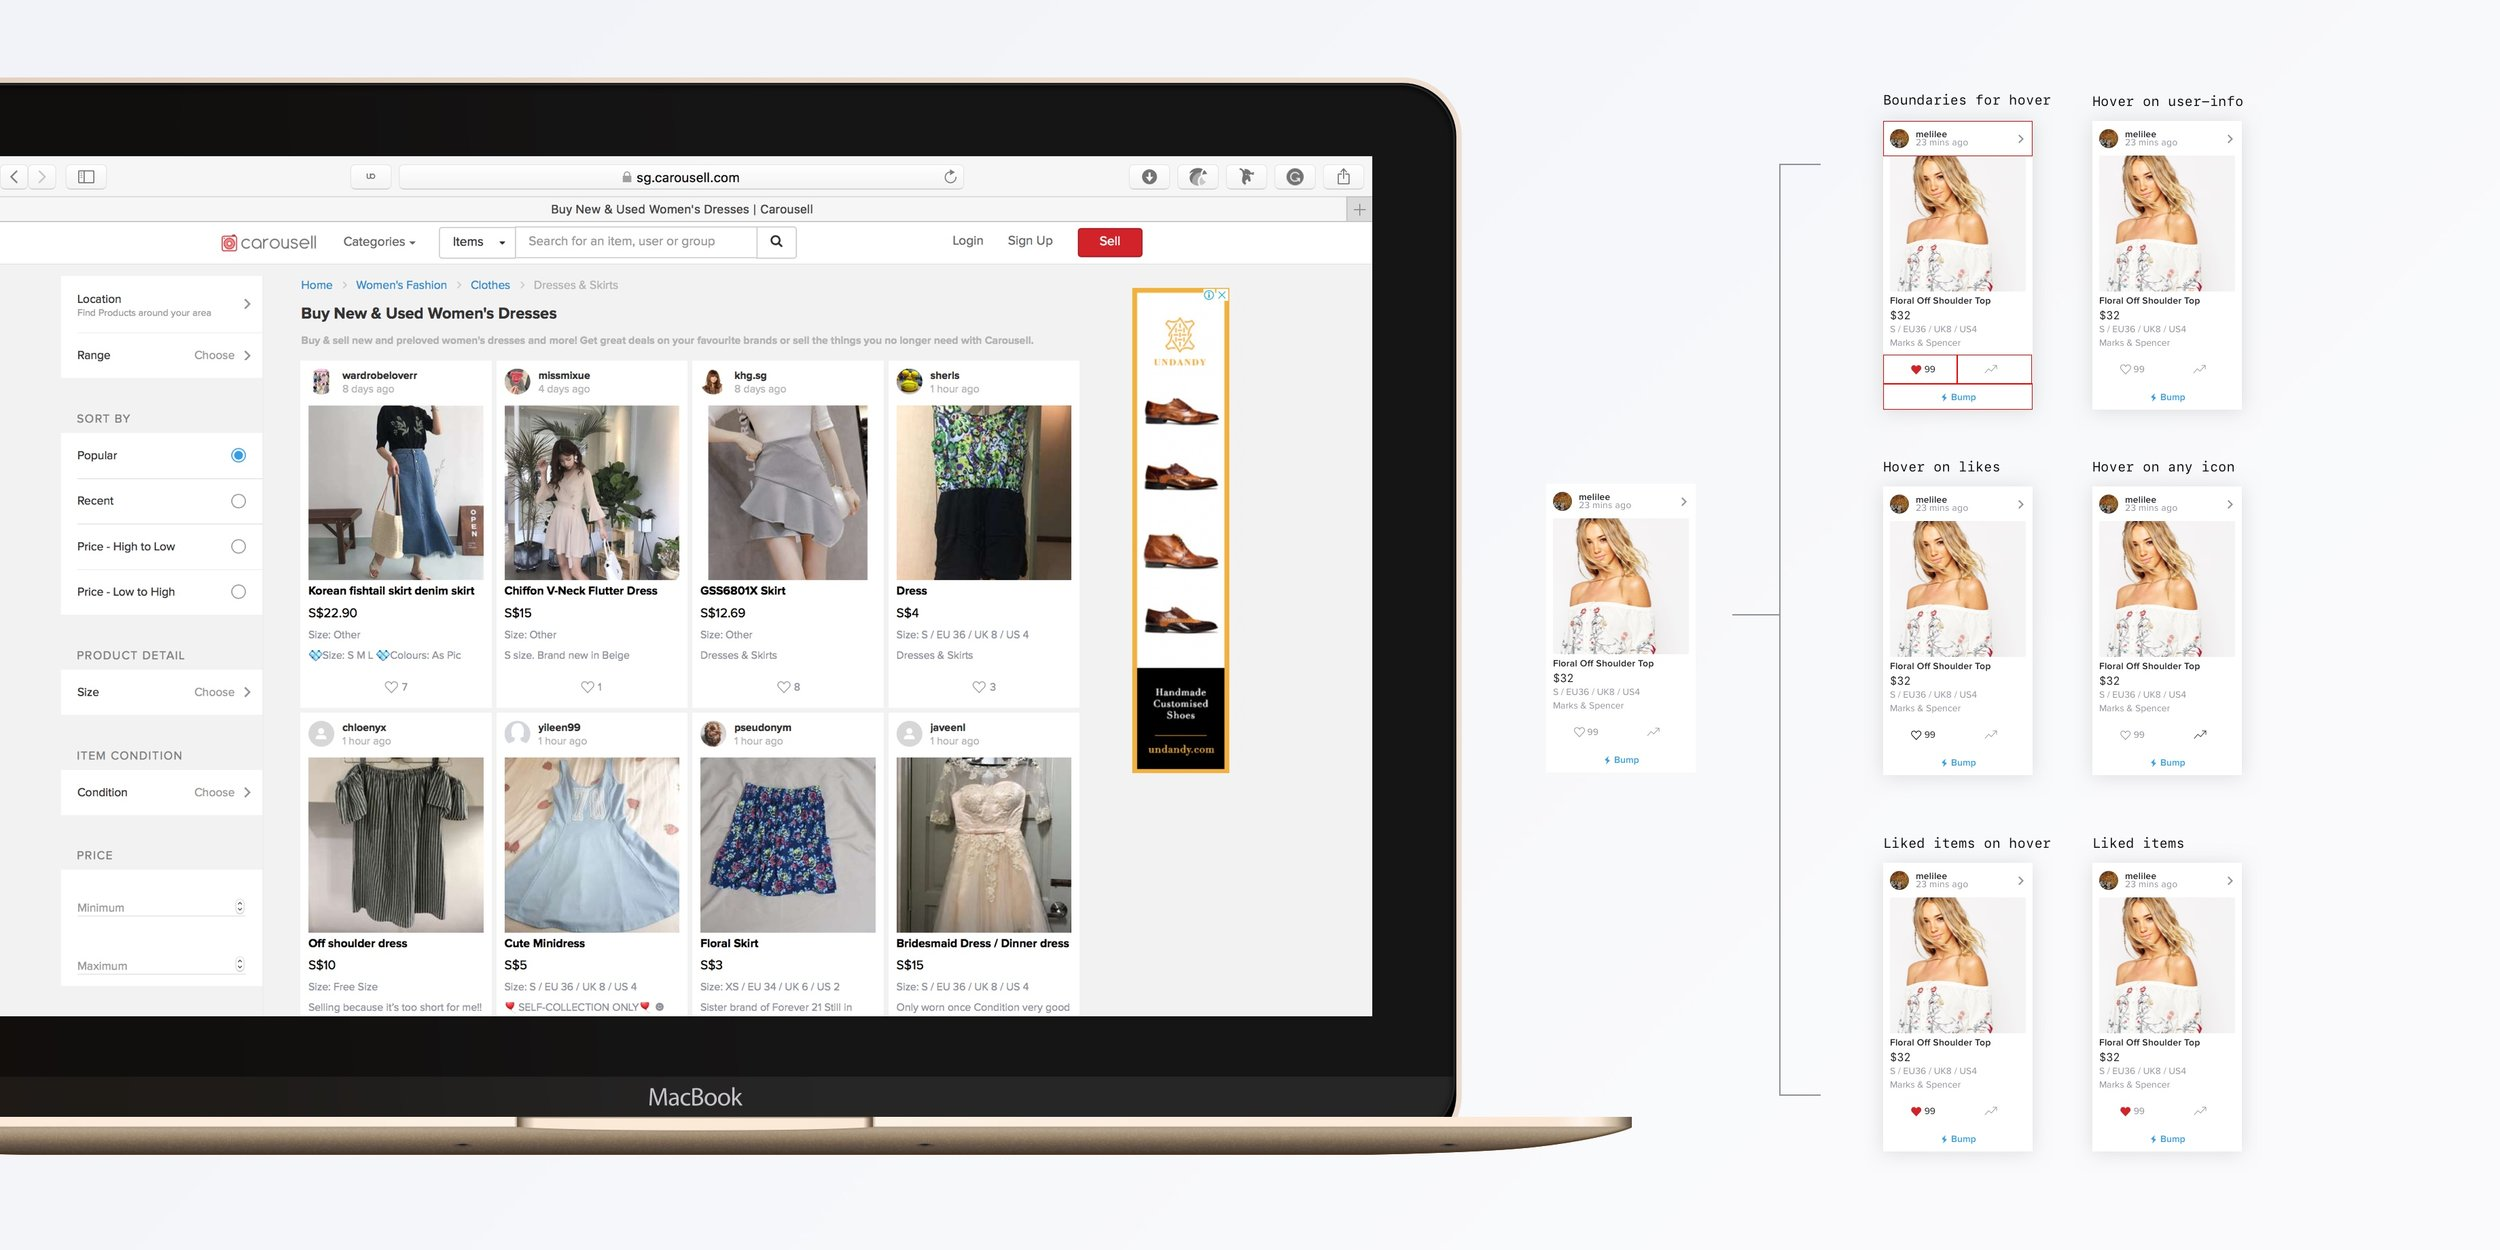 Additionally, the web app included more complexity and missing features compared to the app. We designed in a way it's easy on hover and users can quickly scan.